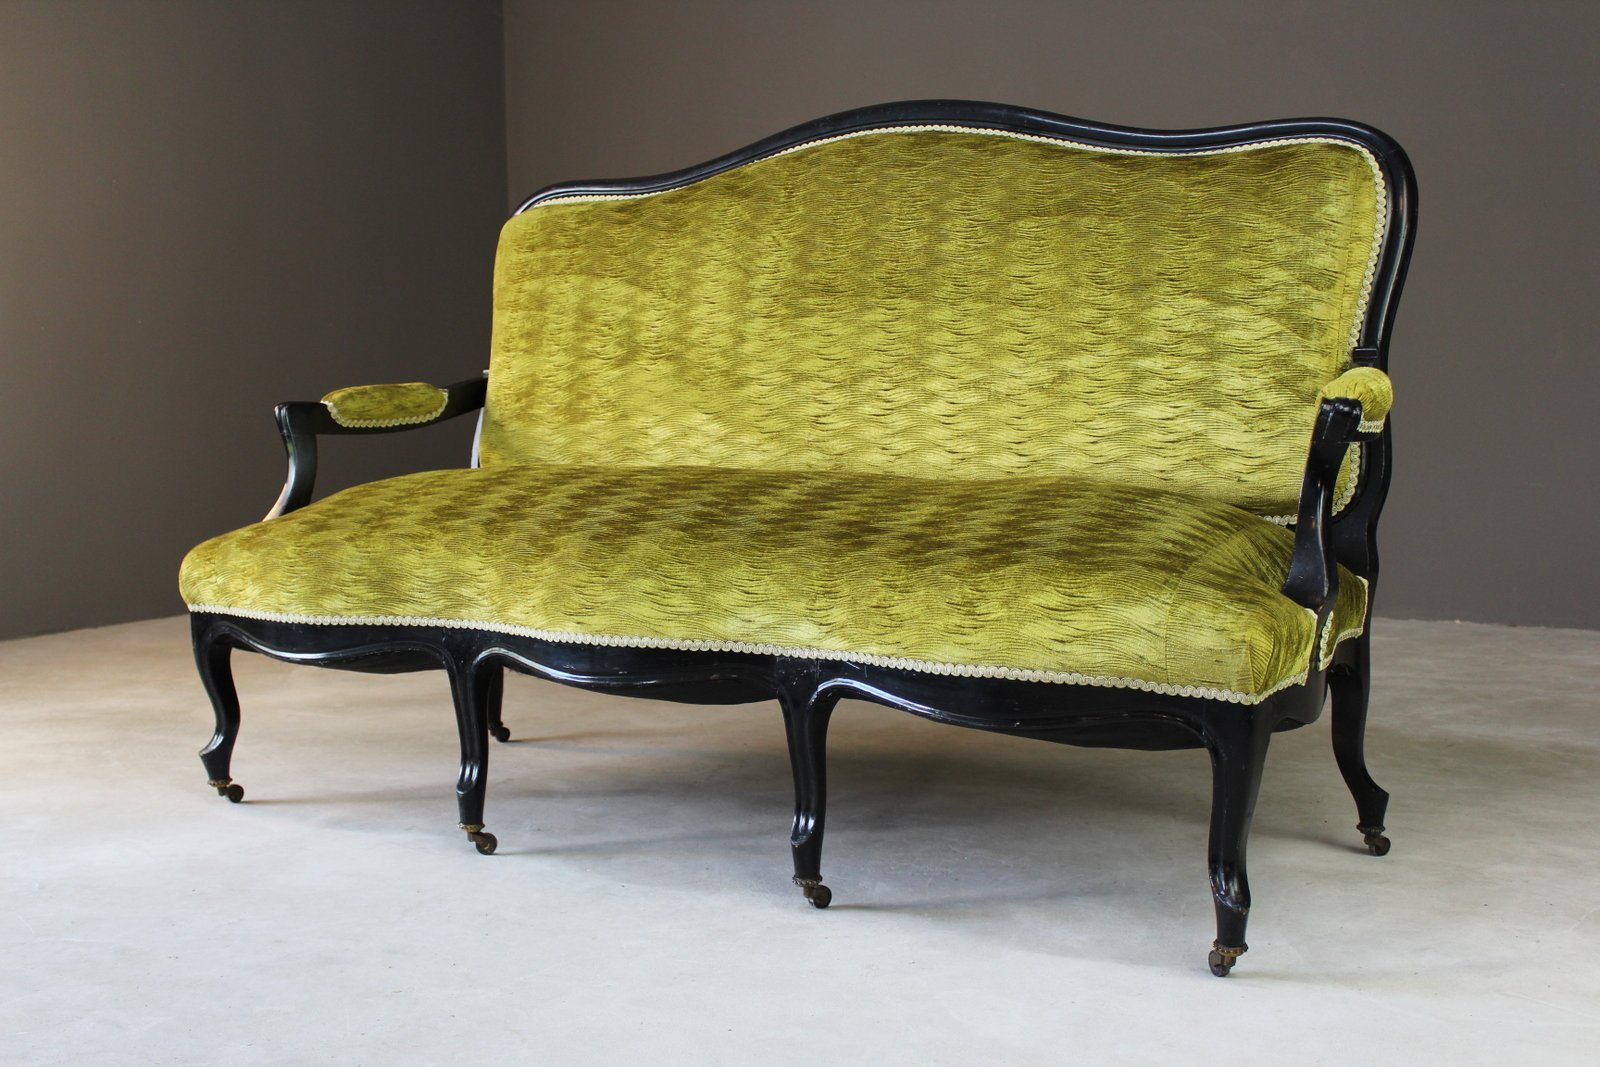 Full Size of Canape Sofa Antique Victorian Ebonised Green Upholstered Sofort Lieferbar Himolla Graues 2 Sitzer Blau Big L Form Modernes Halbrundes In Beziehen Brühl Ligne Sofa Canape Sofa